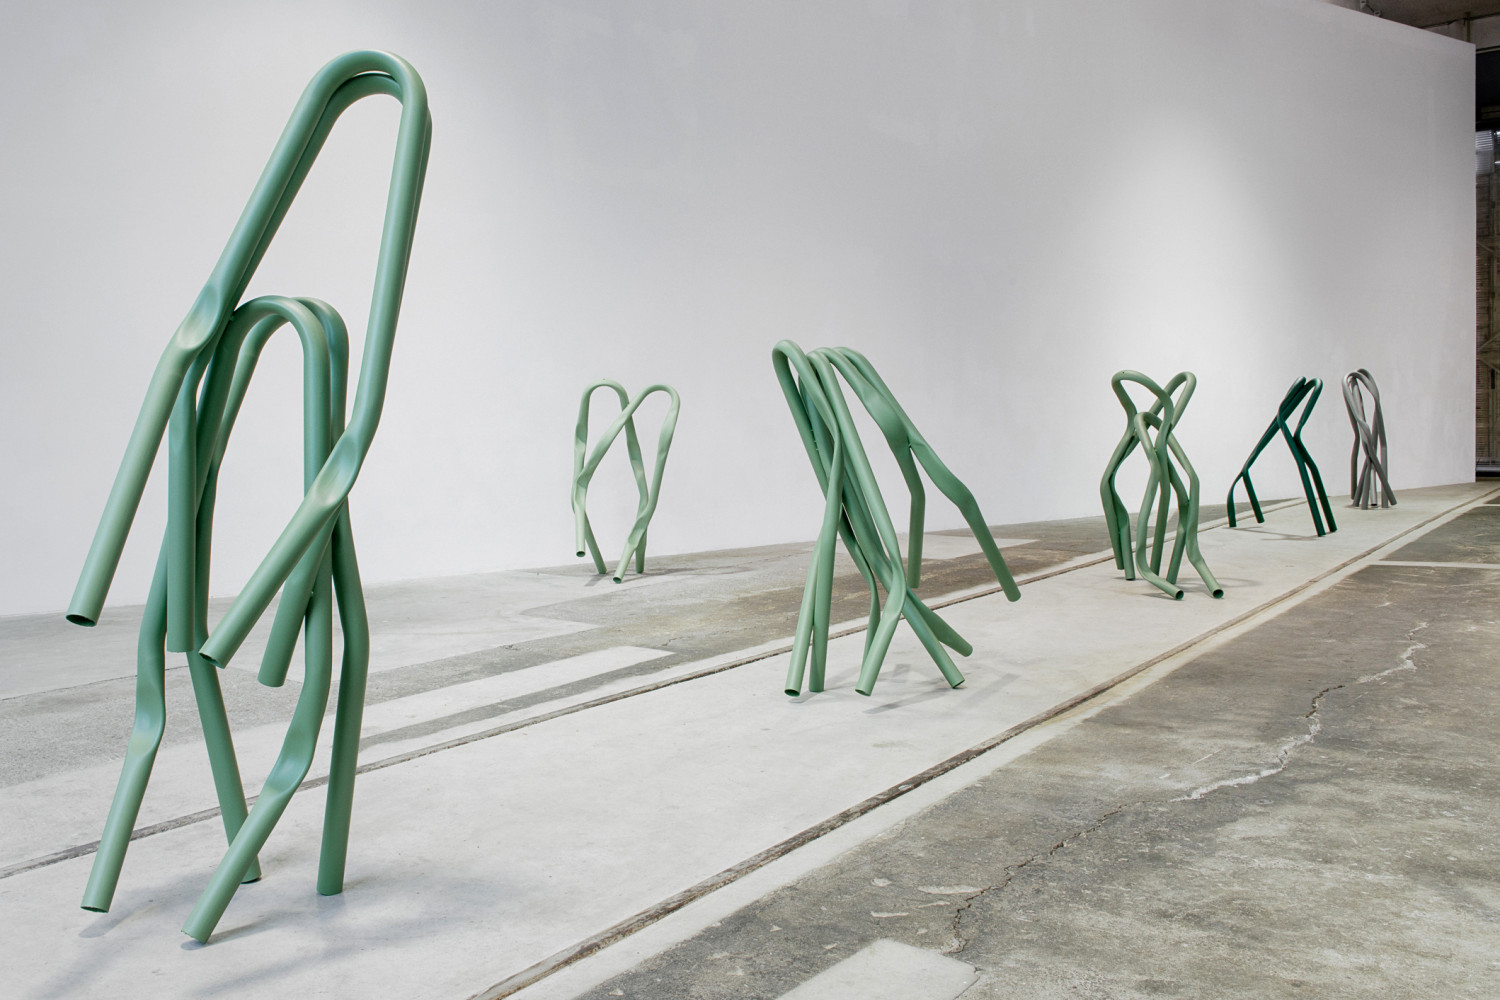 Bettina Pousttchi, 'Kunstmuseum St. Gallen, Protection', Installation view